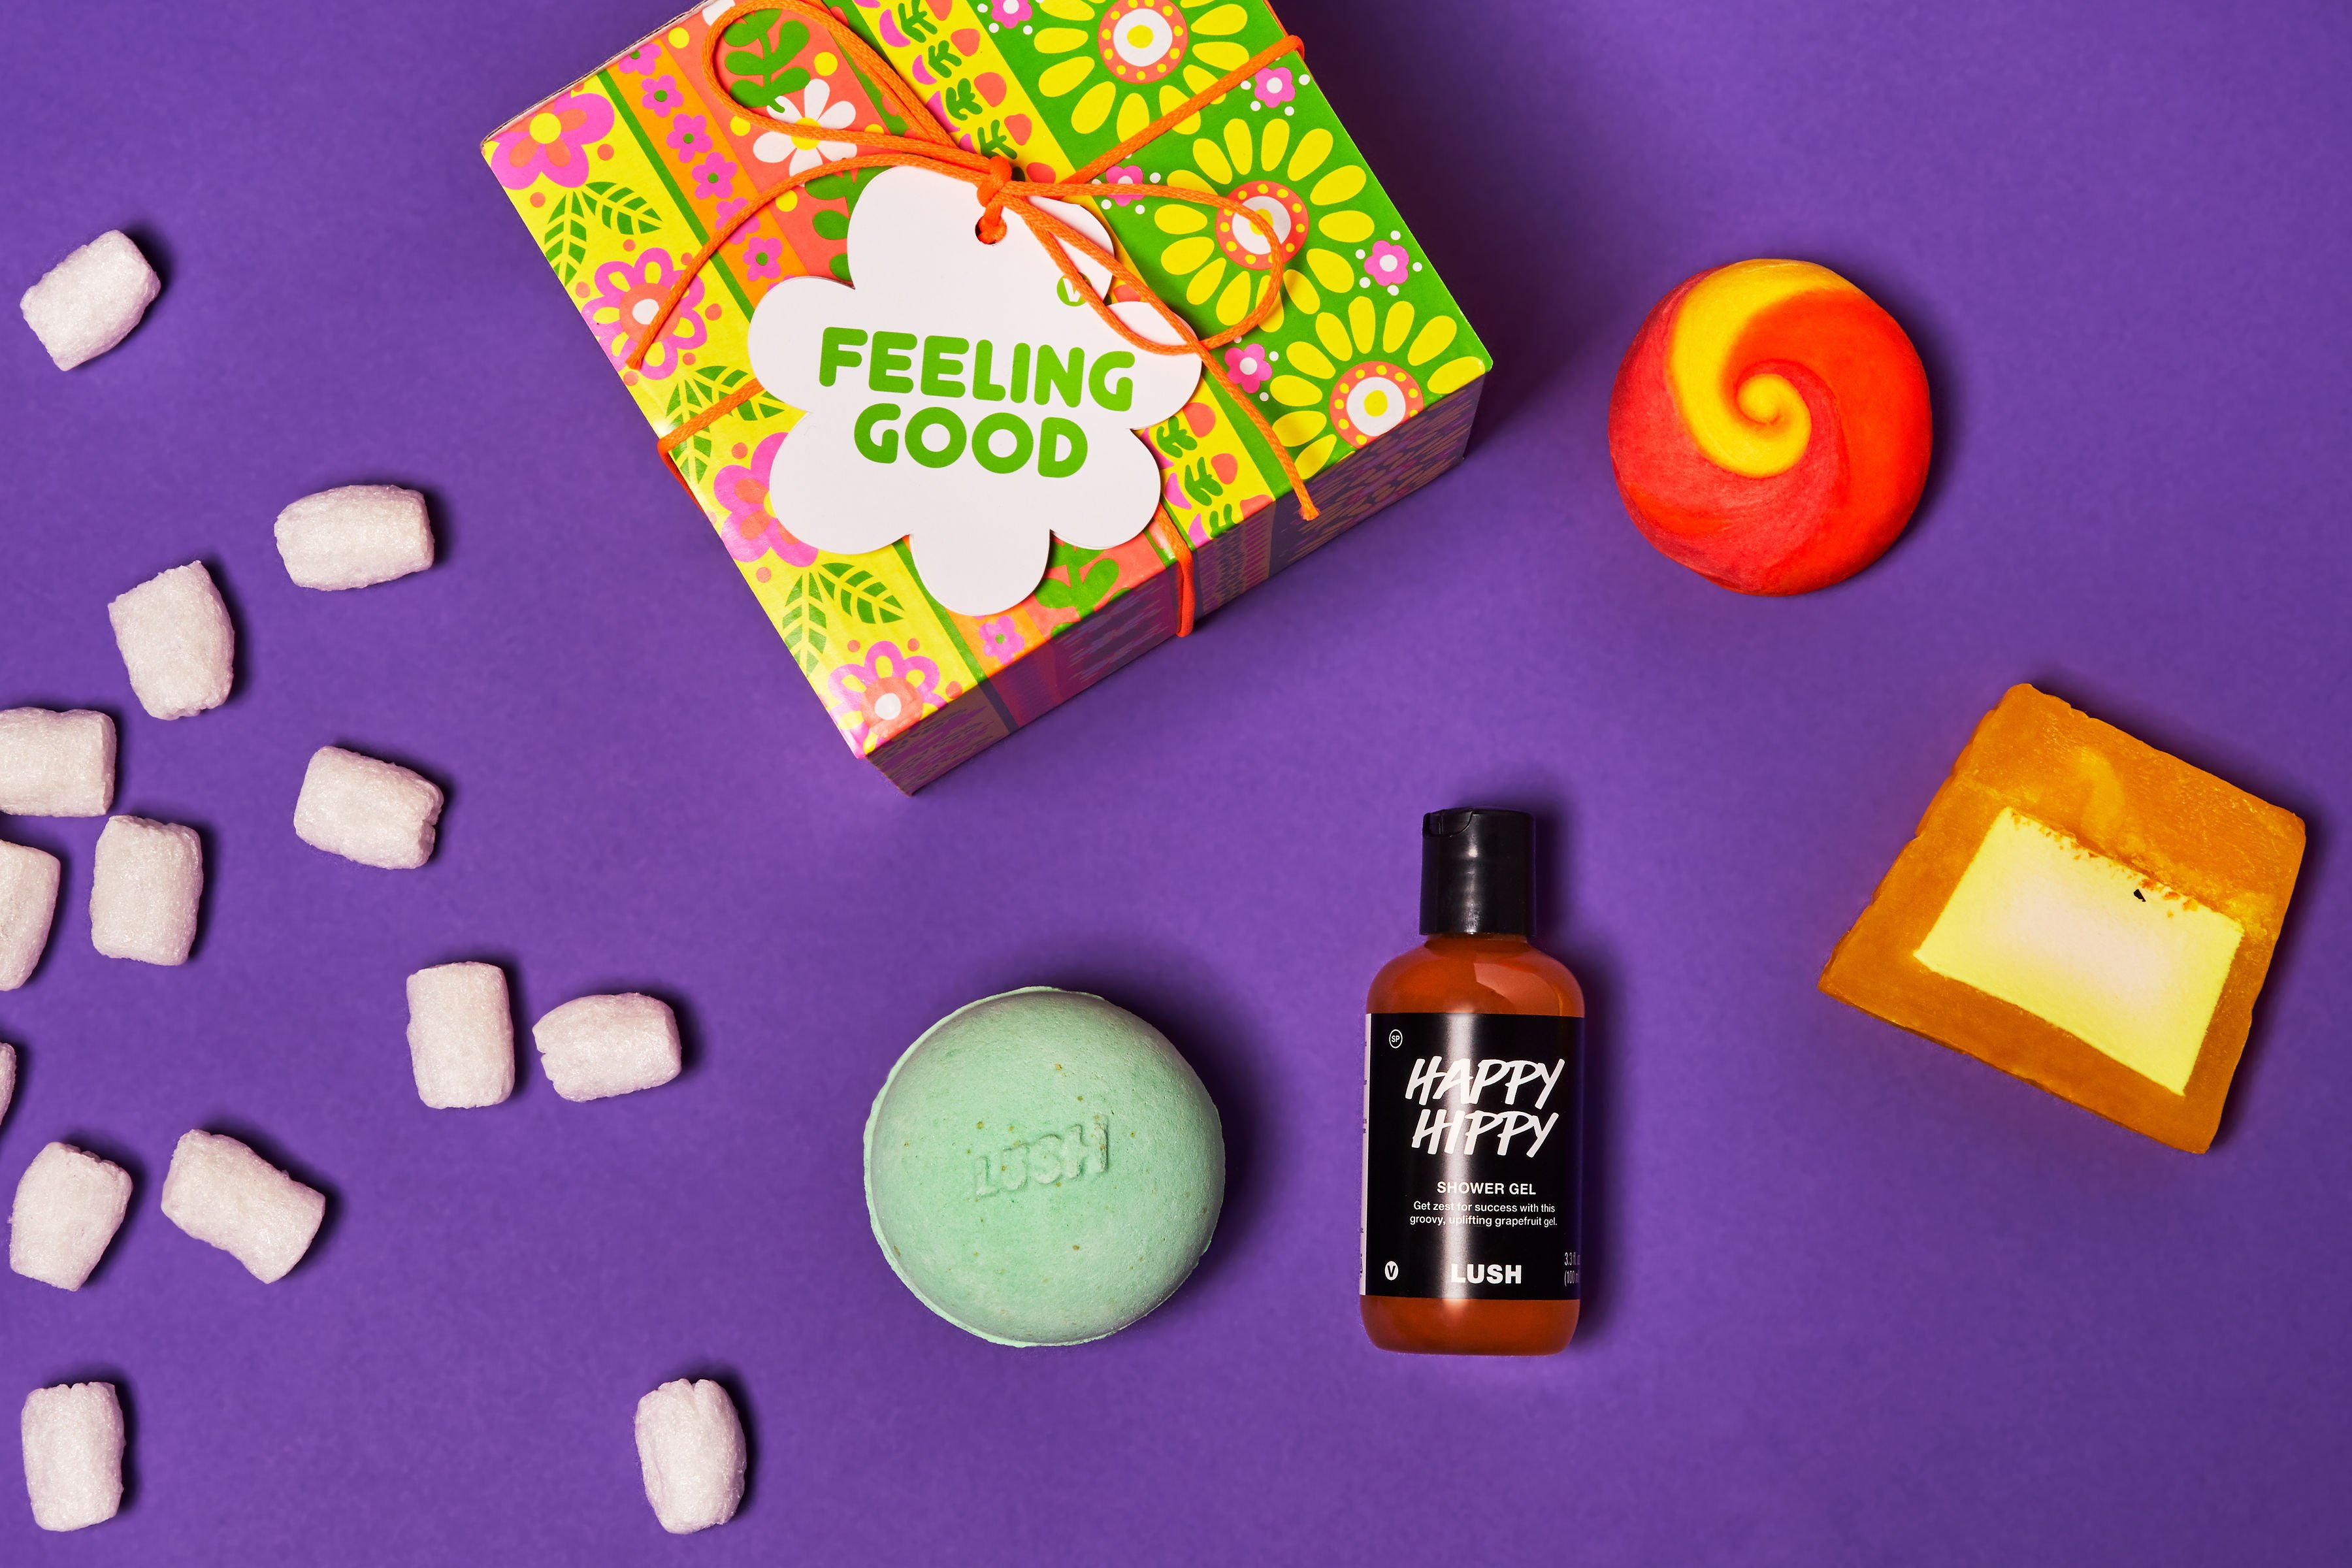 Lush Feeling Good Gift, compostable packing peanuts, Happy Hippy, Avobath, Brightside, and Lemon Zest sit against a purple background